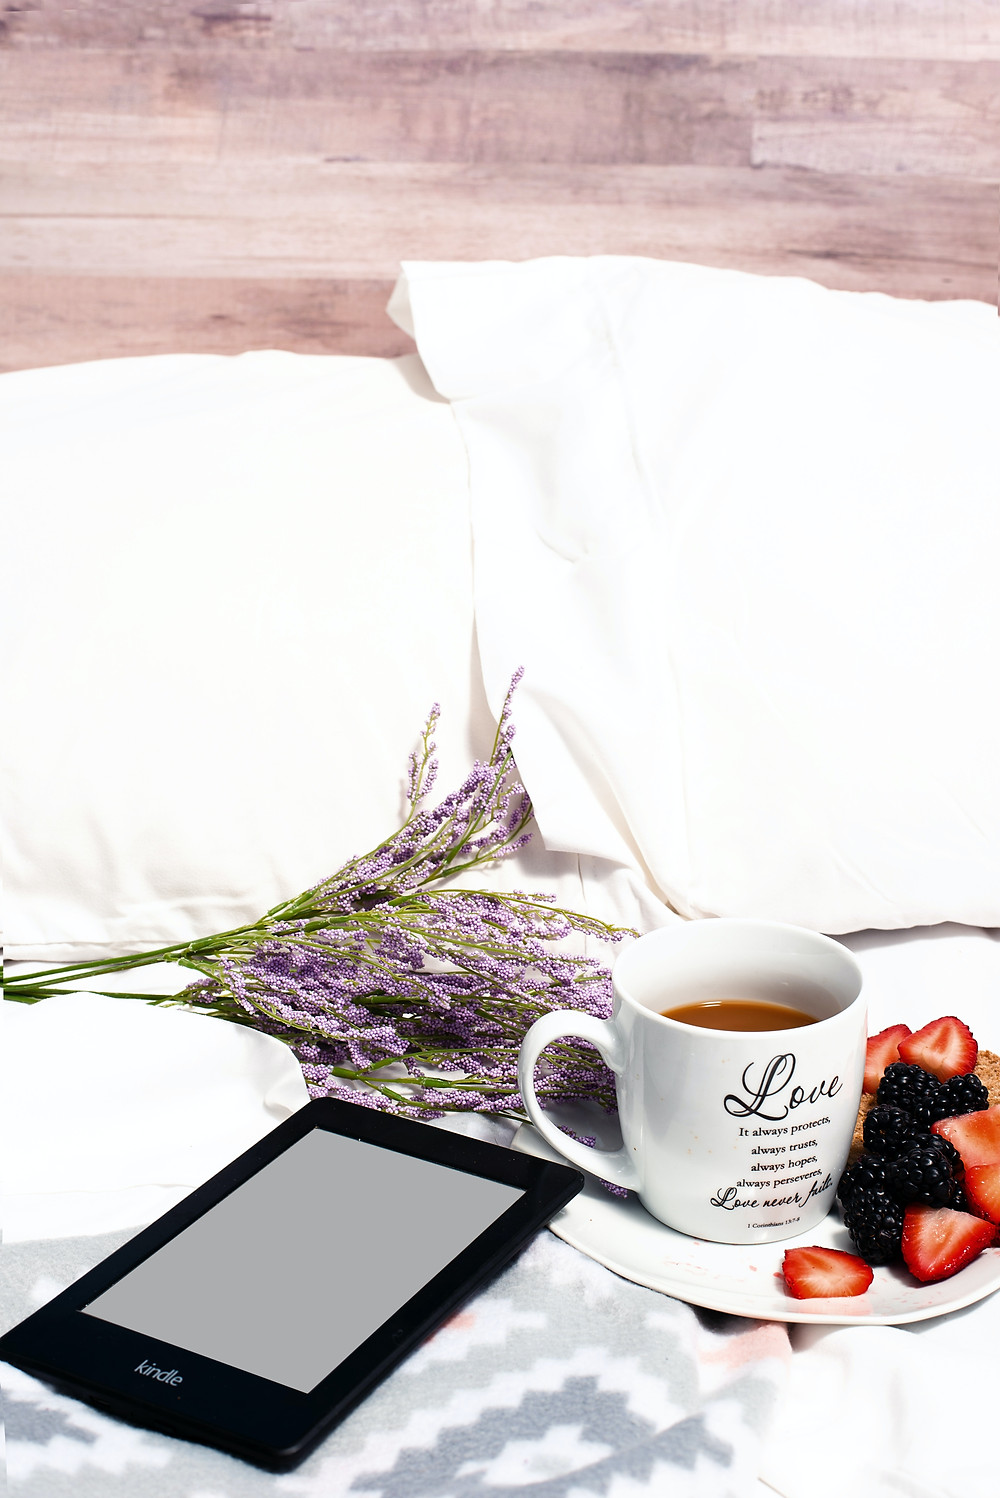 Flowers, e-reader, coffee, and breakfast in bed for Mother's Day 2020